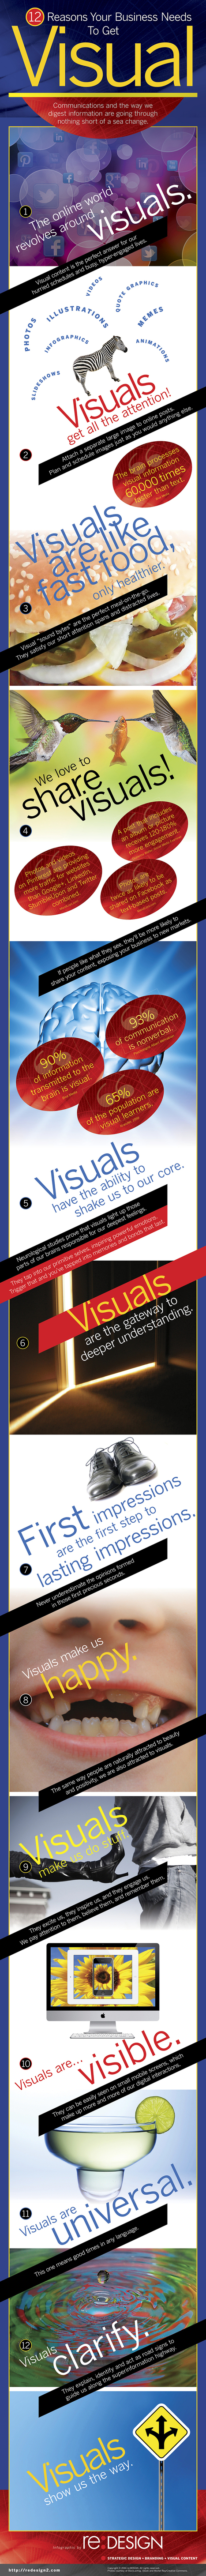 The Visual Revolution is Here! | 21st Century L... | Visual Thinking, Visual Learning, Visual Literacy | Scoop.it